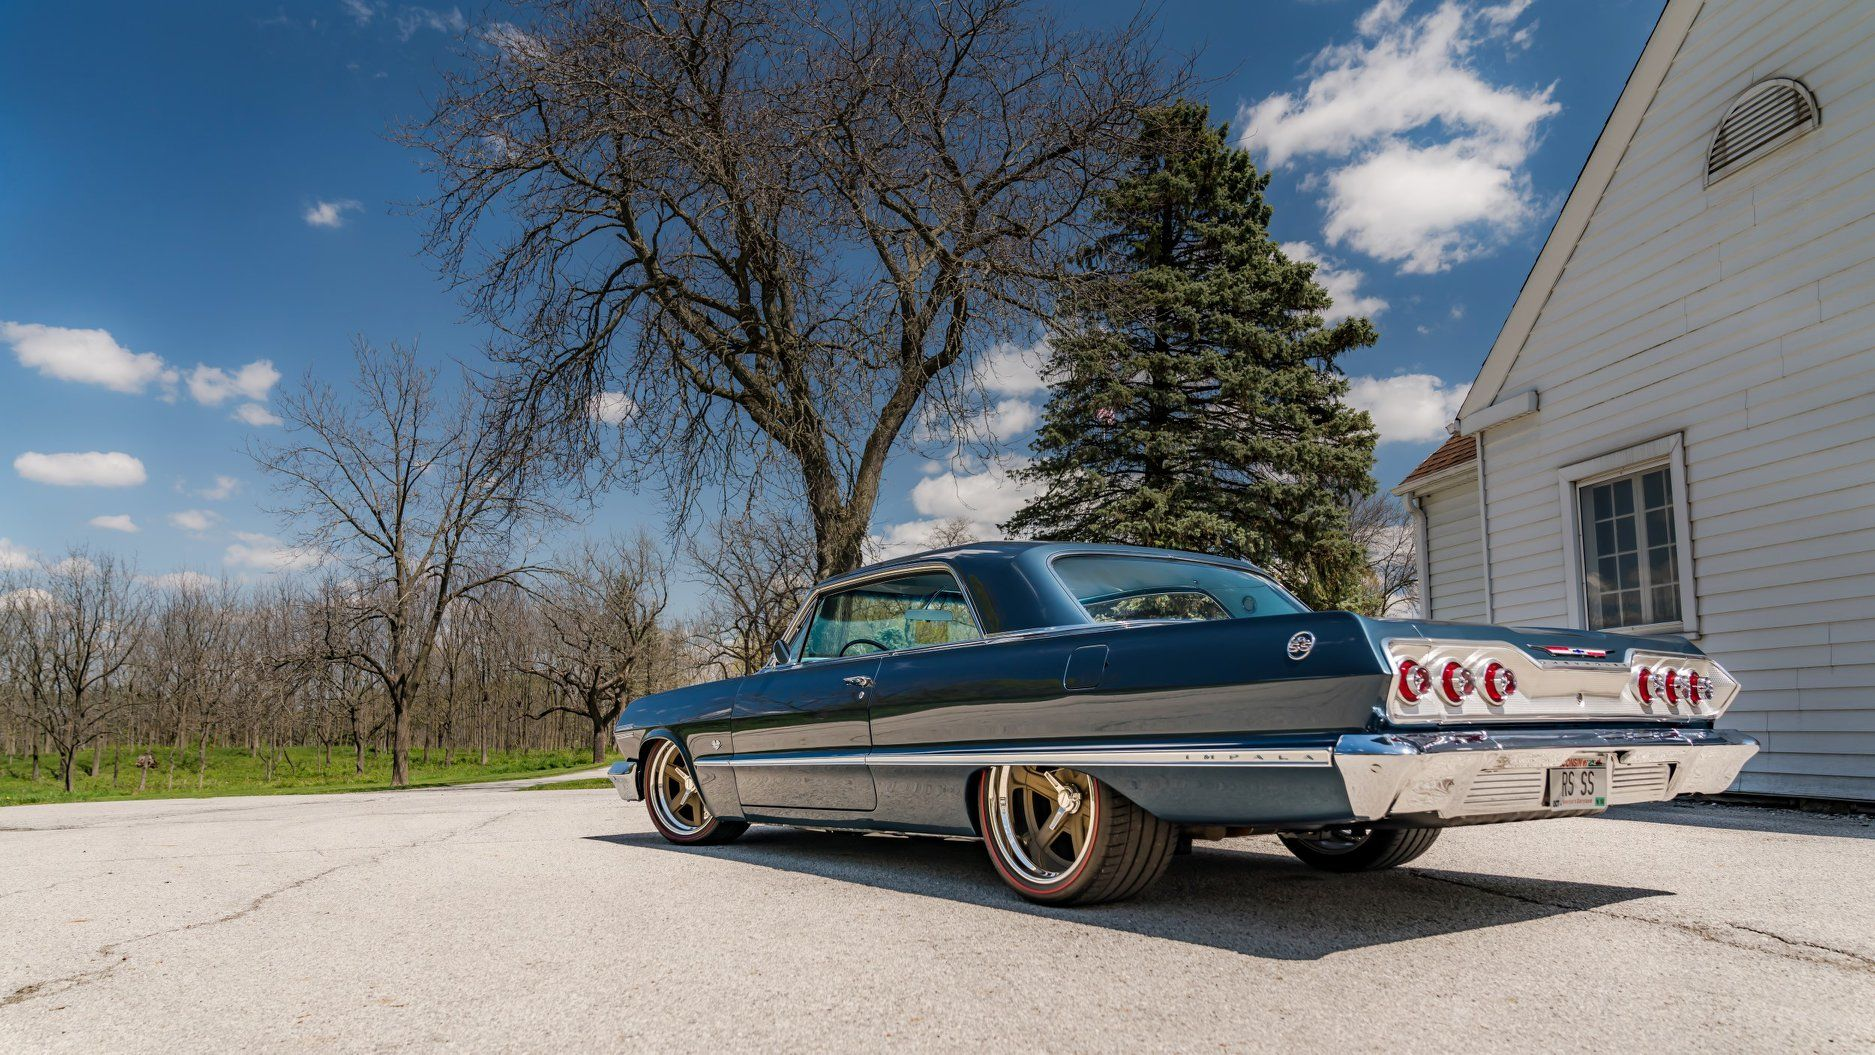 1963 Chevrolet Impala | Barry's Roadster Shop-Built 1963 Chevrolet Impala on Forgeline RS6 Wheels